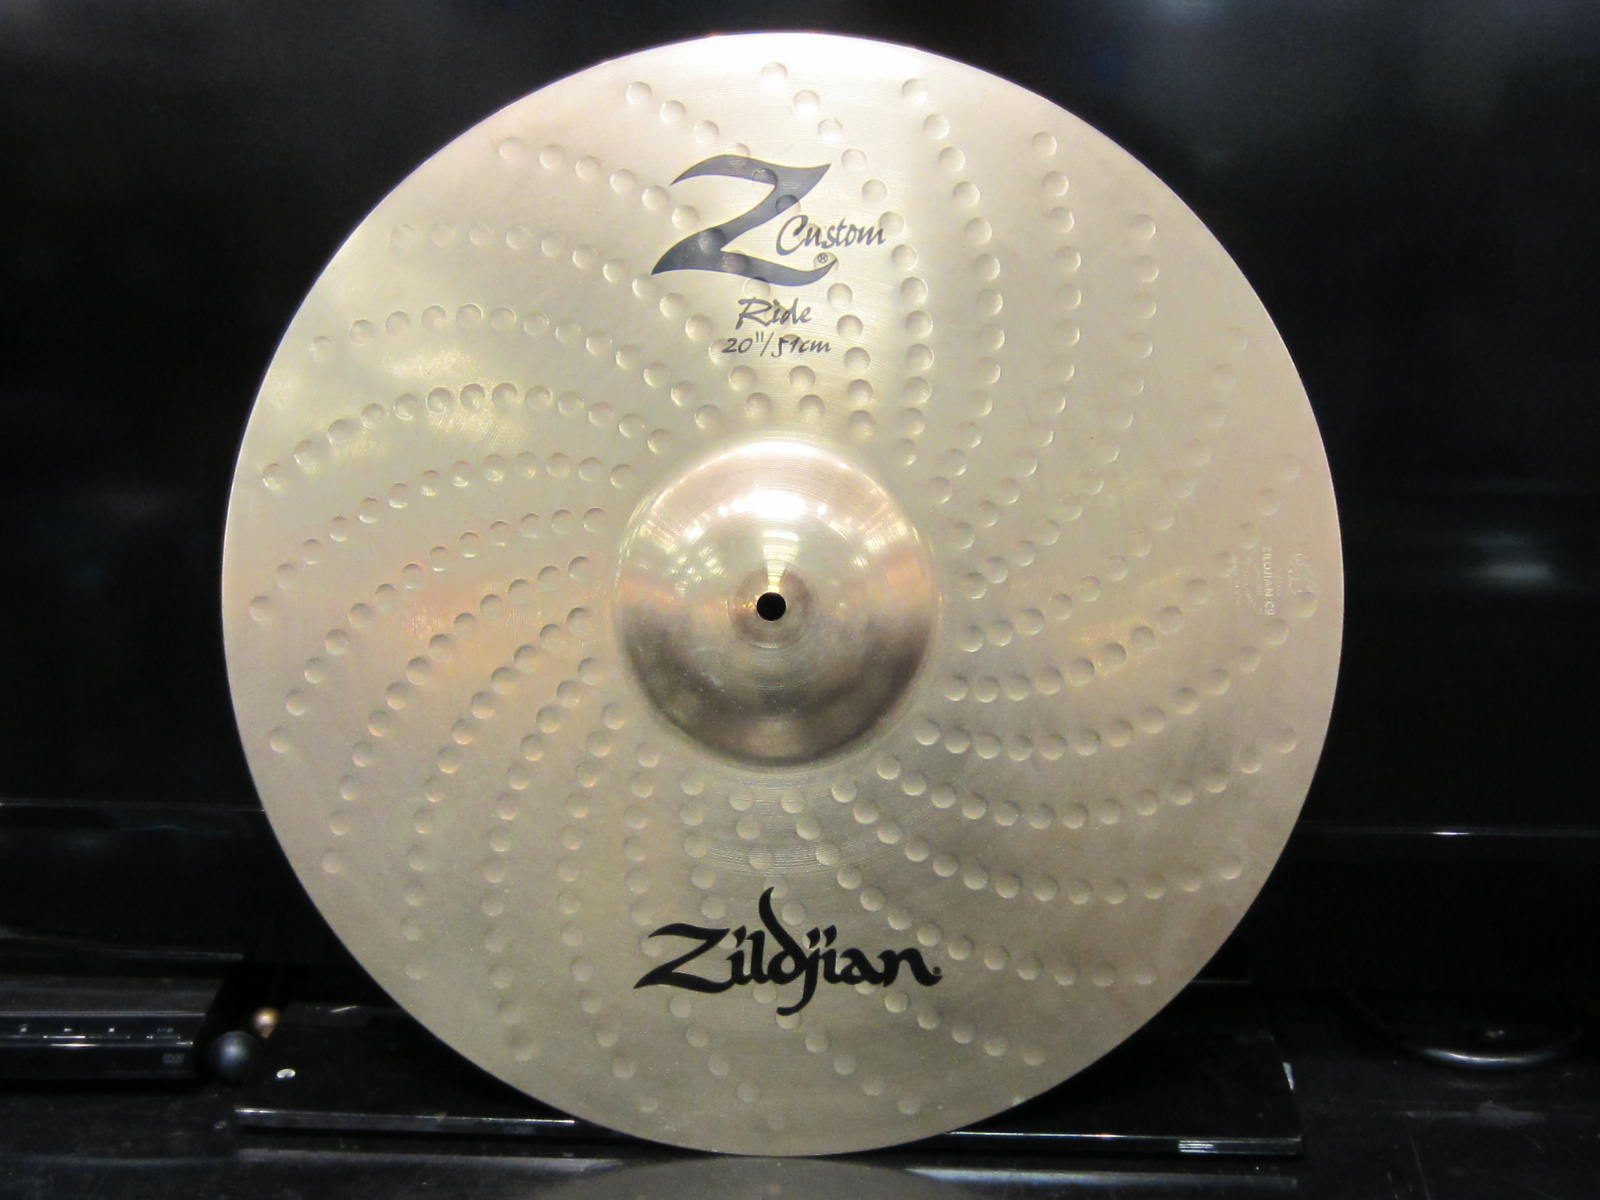 e0f7c812dc47 Used Zildjian Z Custom Ride. SKU  UZ8221112. UZ8221112-1